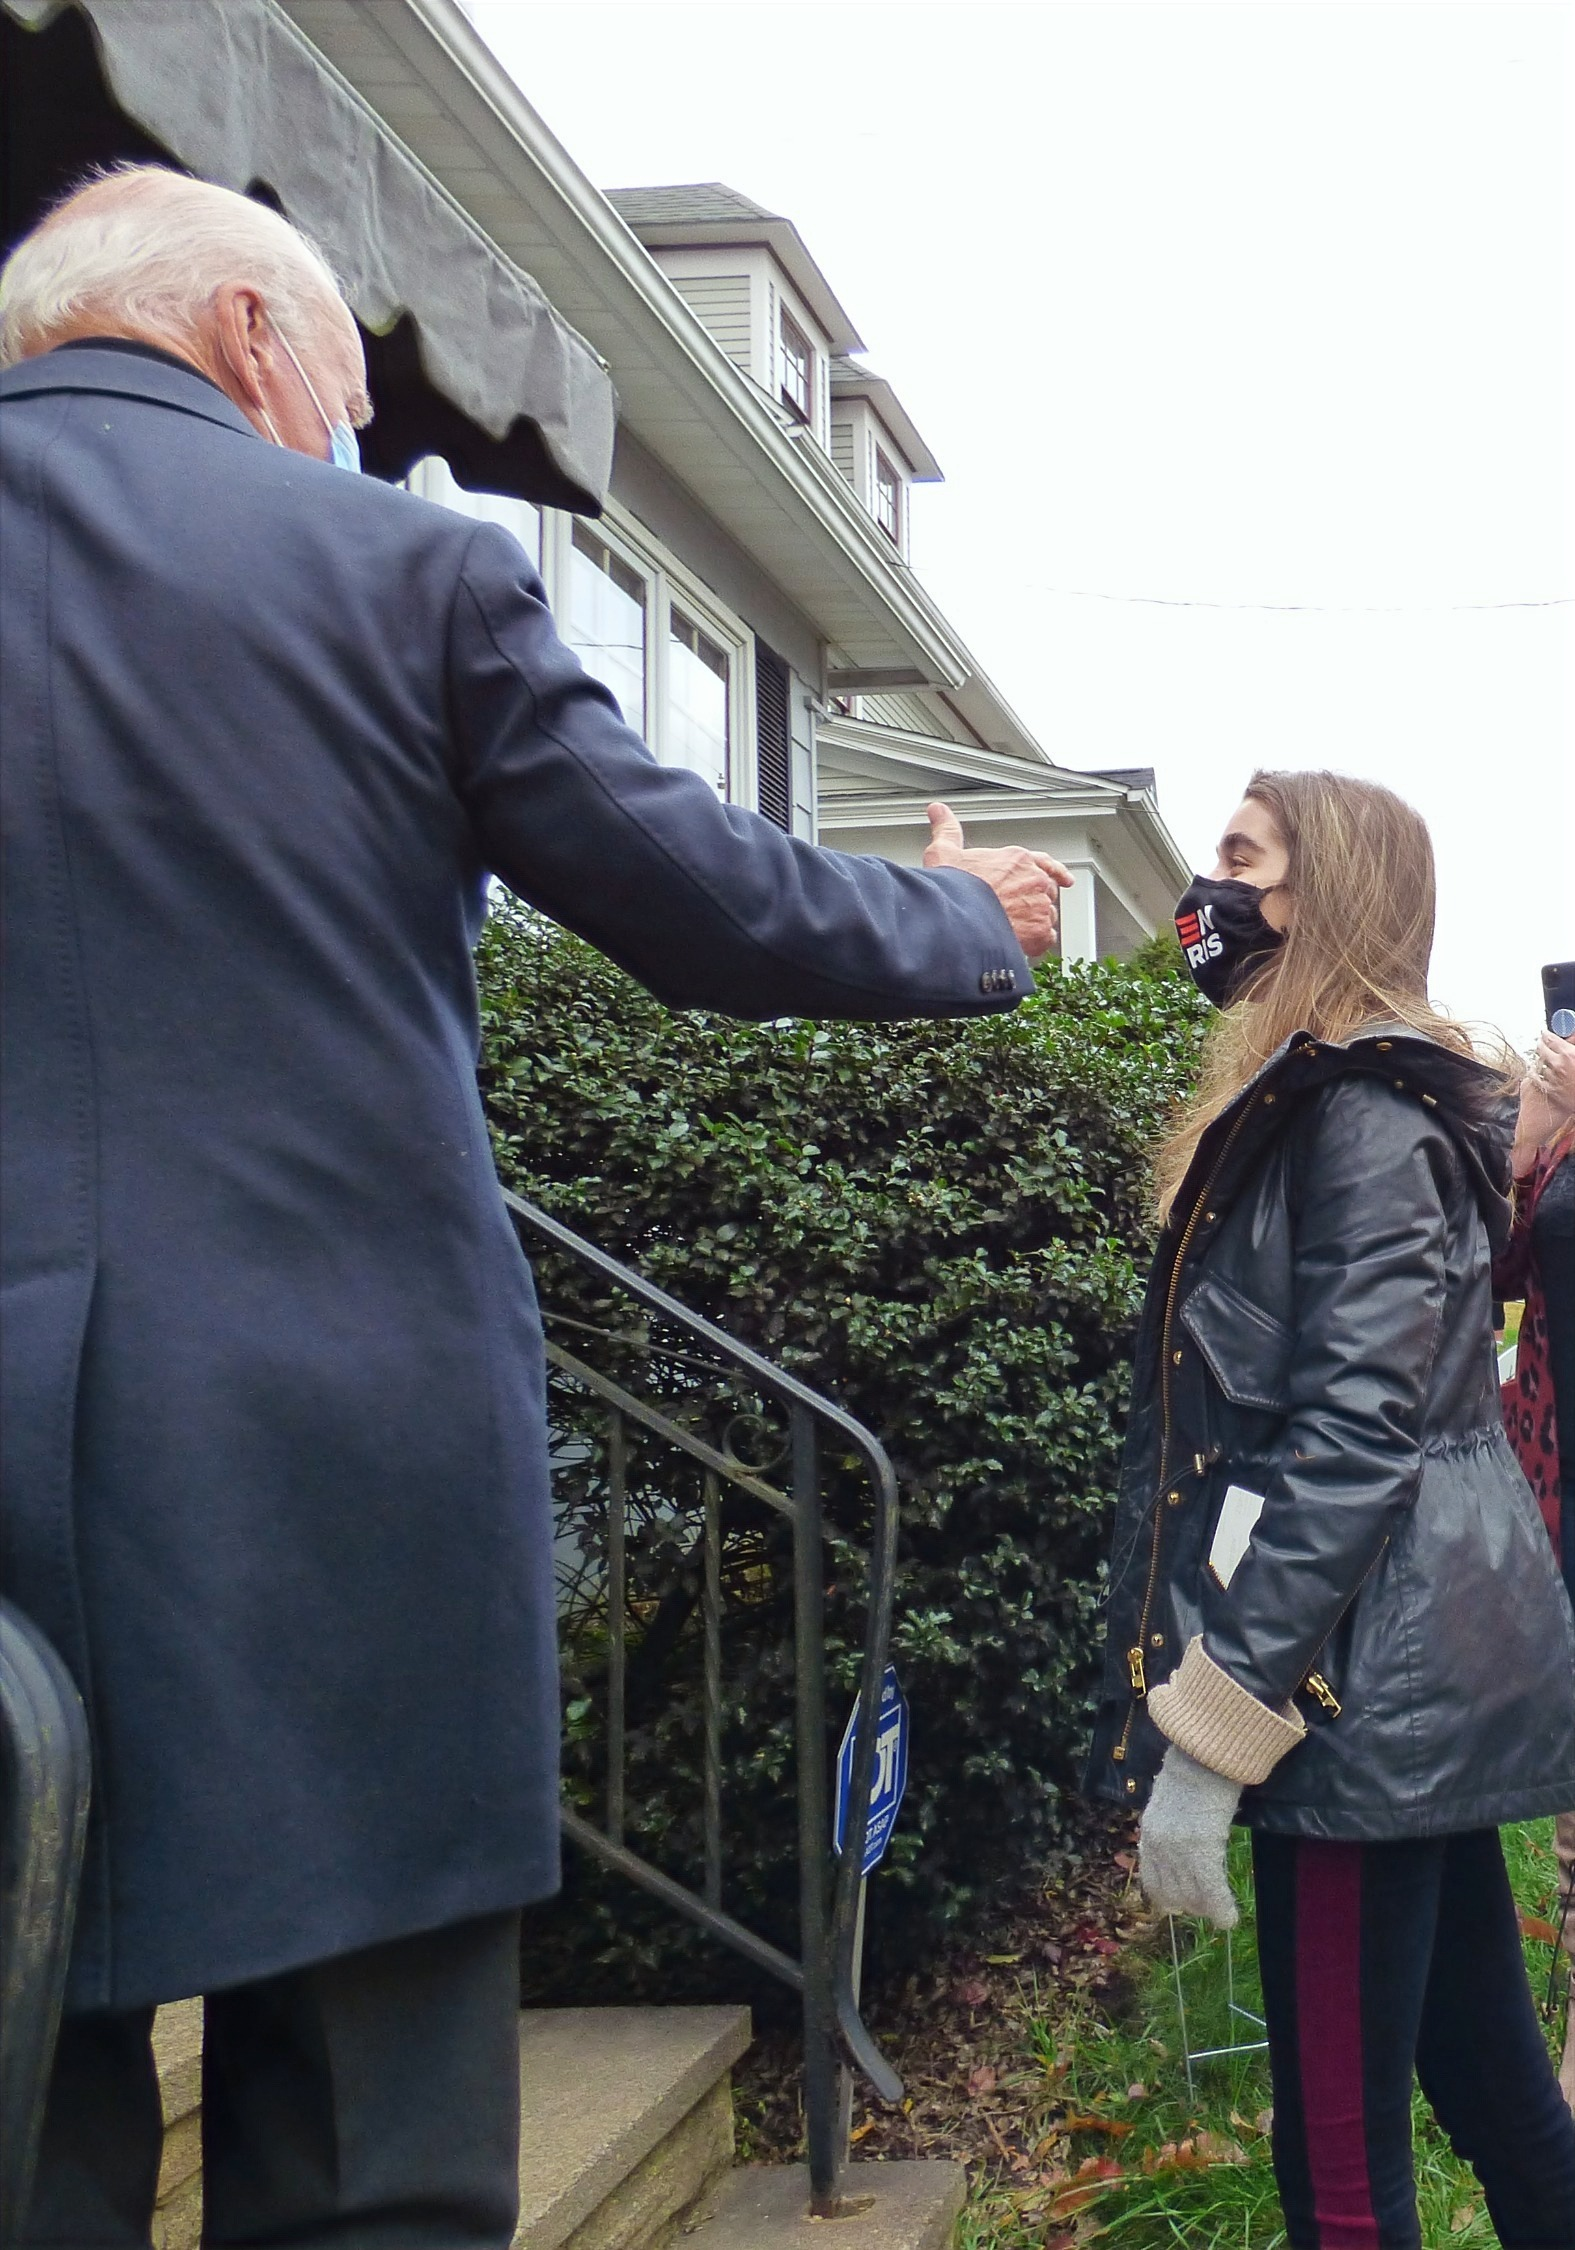 Joe Biden introduces his granddaughter Natalie to Anne and Marty Kearns at his childhood home in Scr